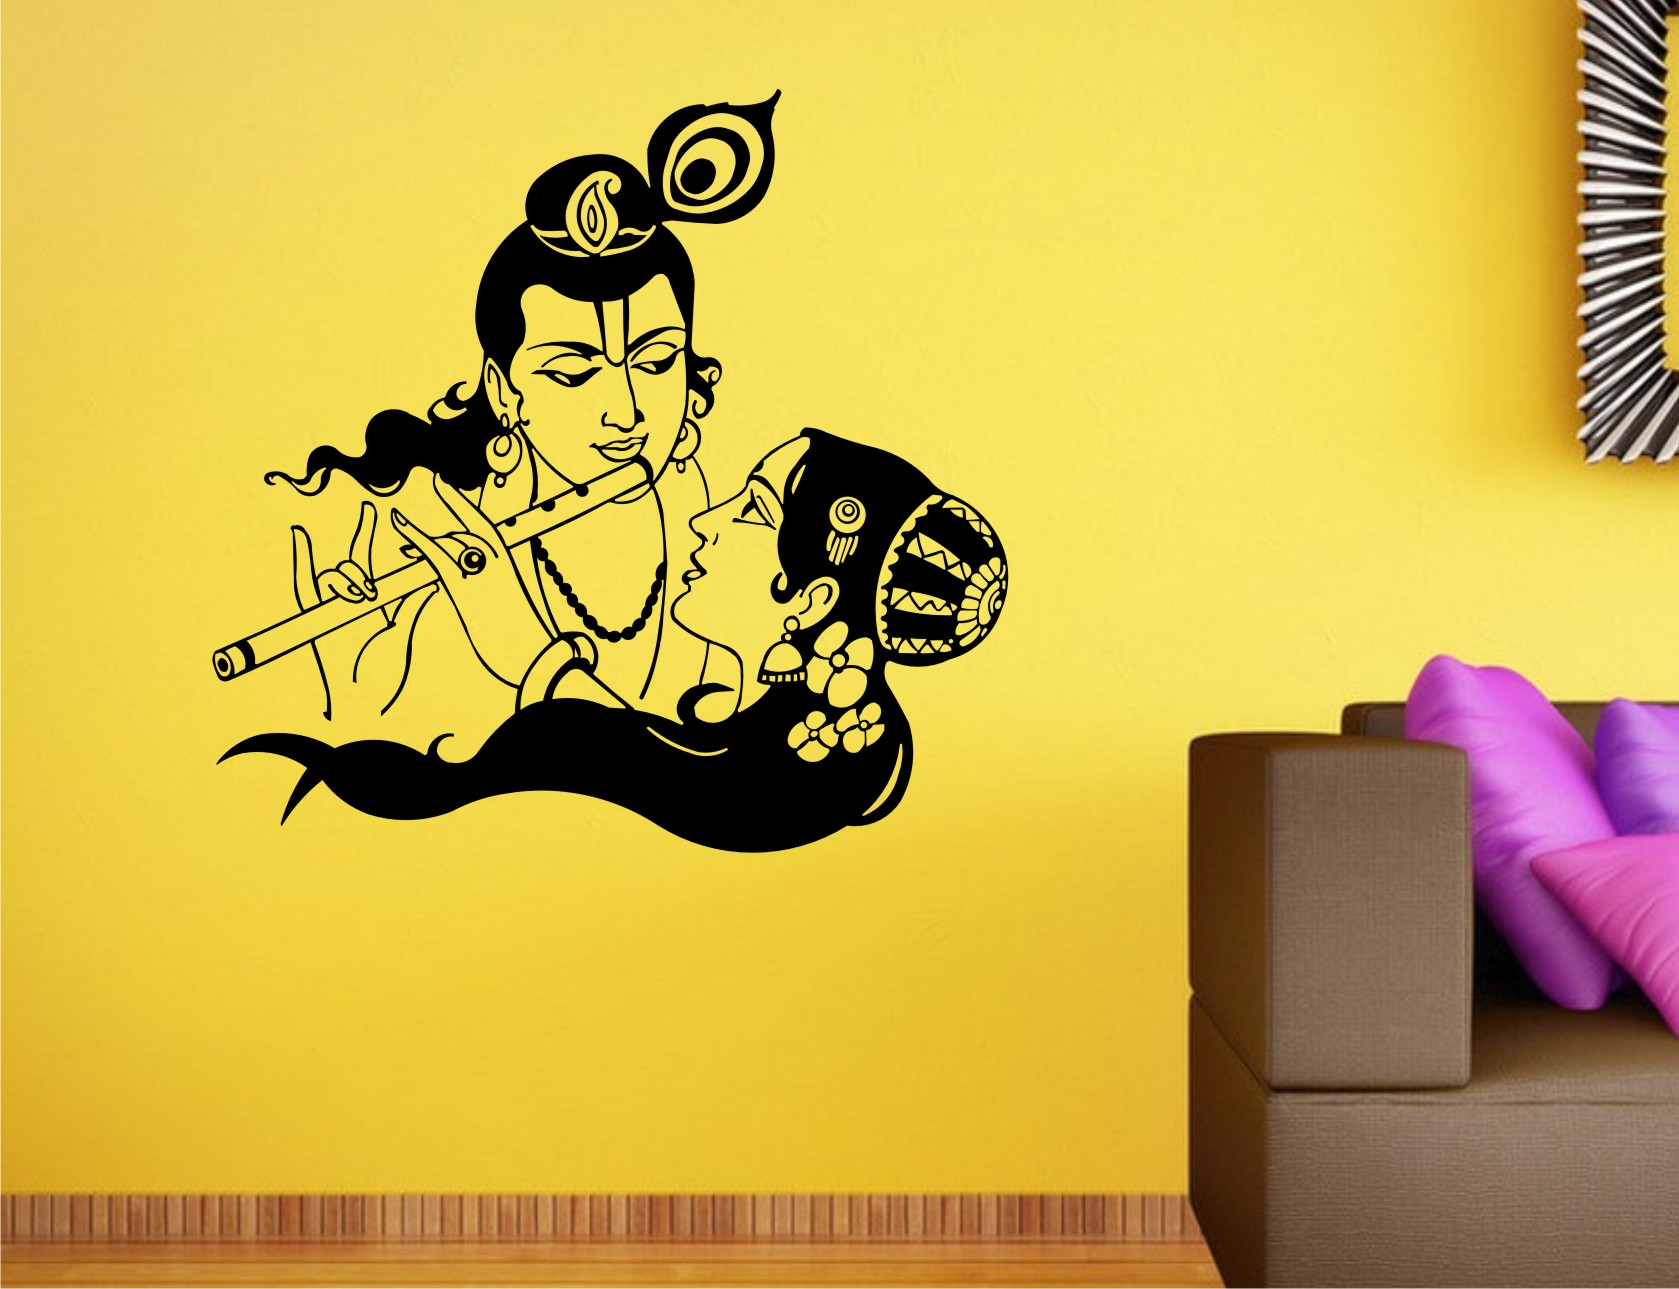 Wall stickers radha krishna - Buy Heaven Decors Radha Krishna Couple Wall Decal Size59x62cm Vinyl Black Wall Stickers At 74 Off Online India At Kraftly Hedera51522oio2380